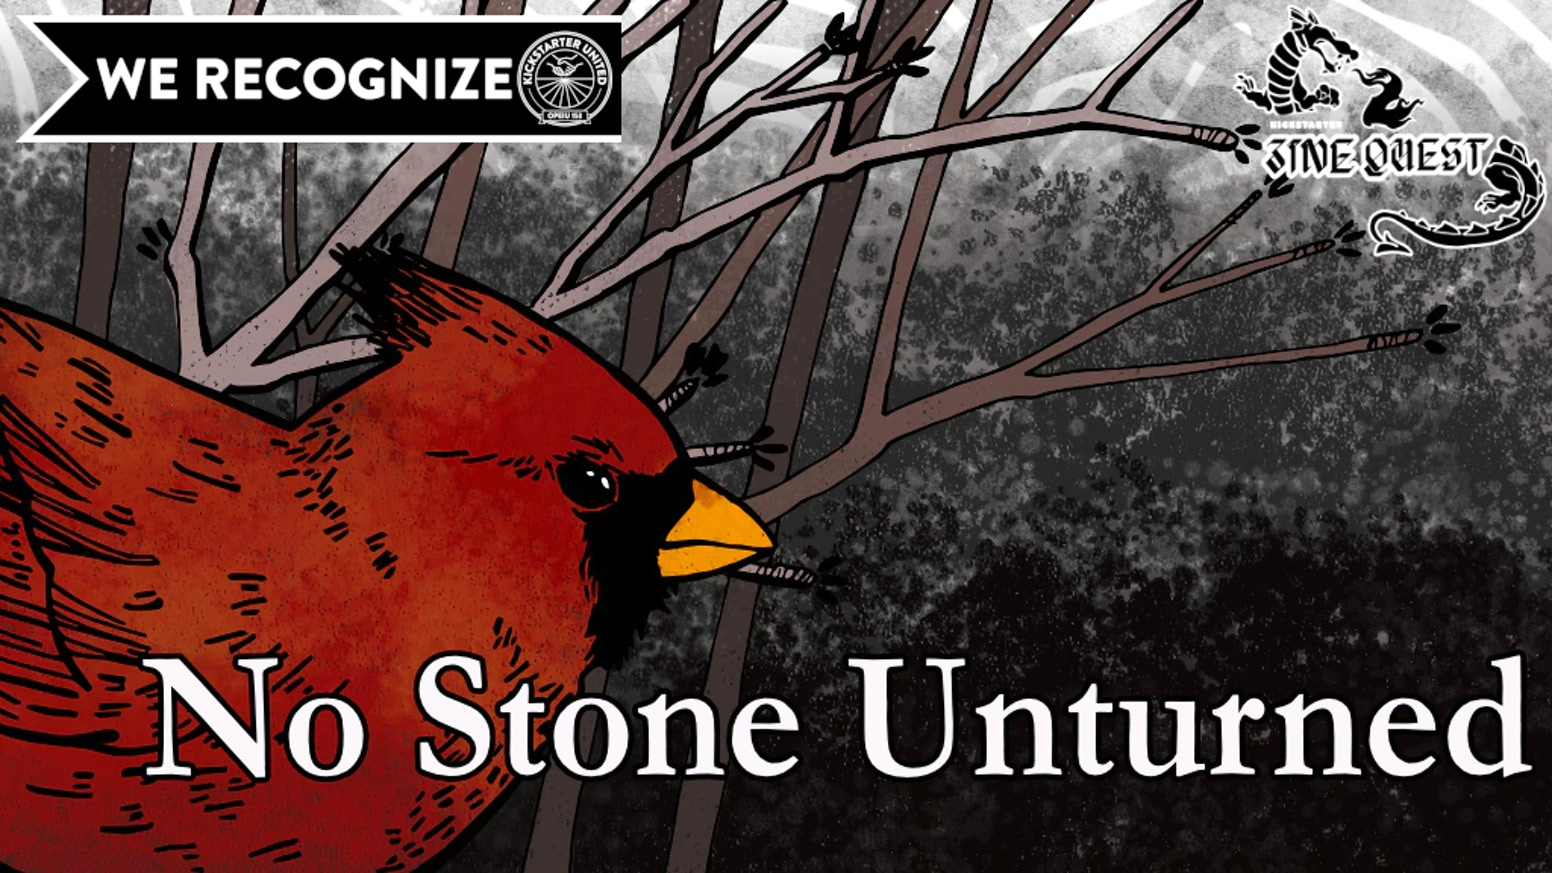 Explore the impacts of adventuring through a world in recovery while building up your home settlement in this Zine Quest game.